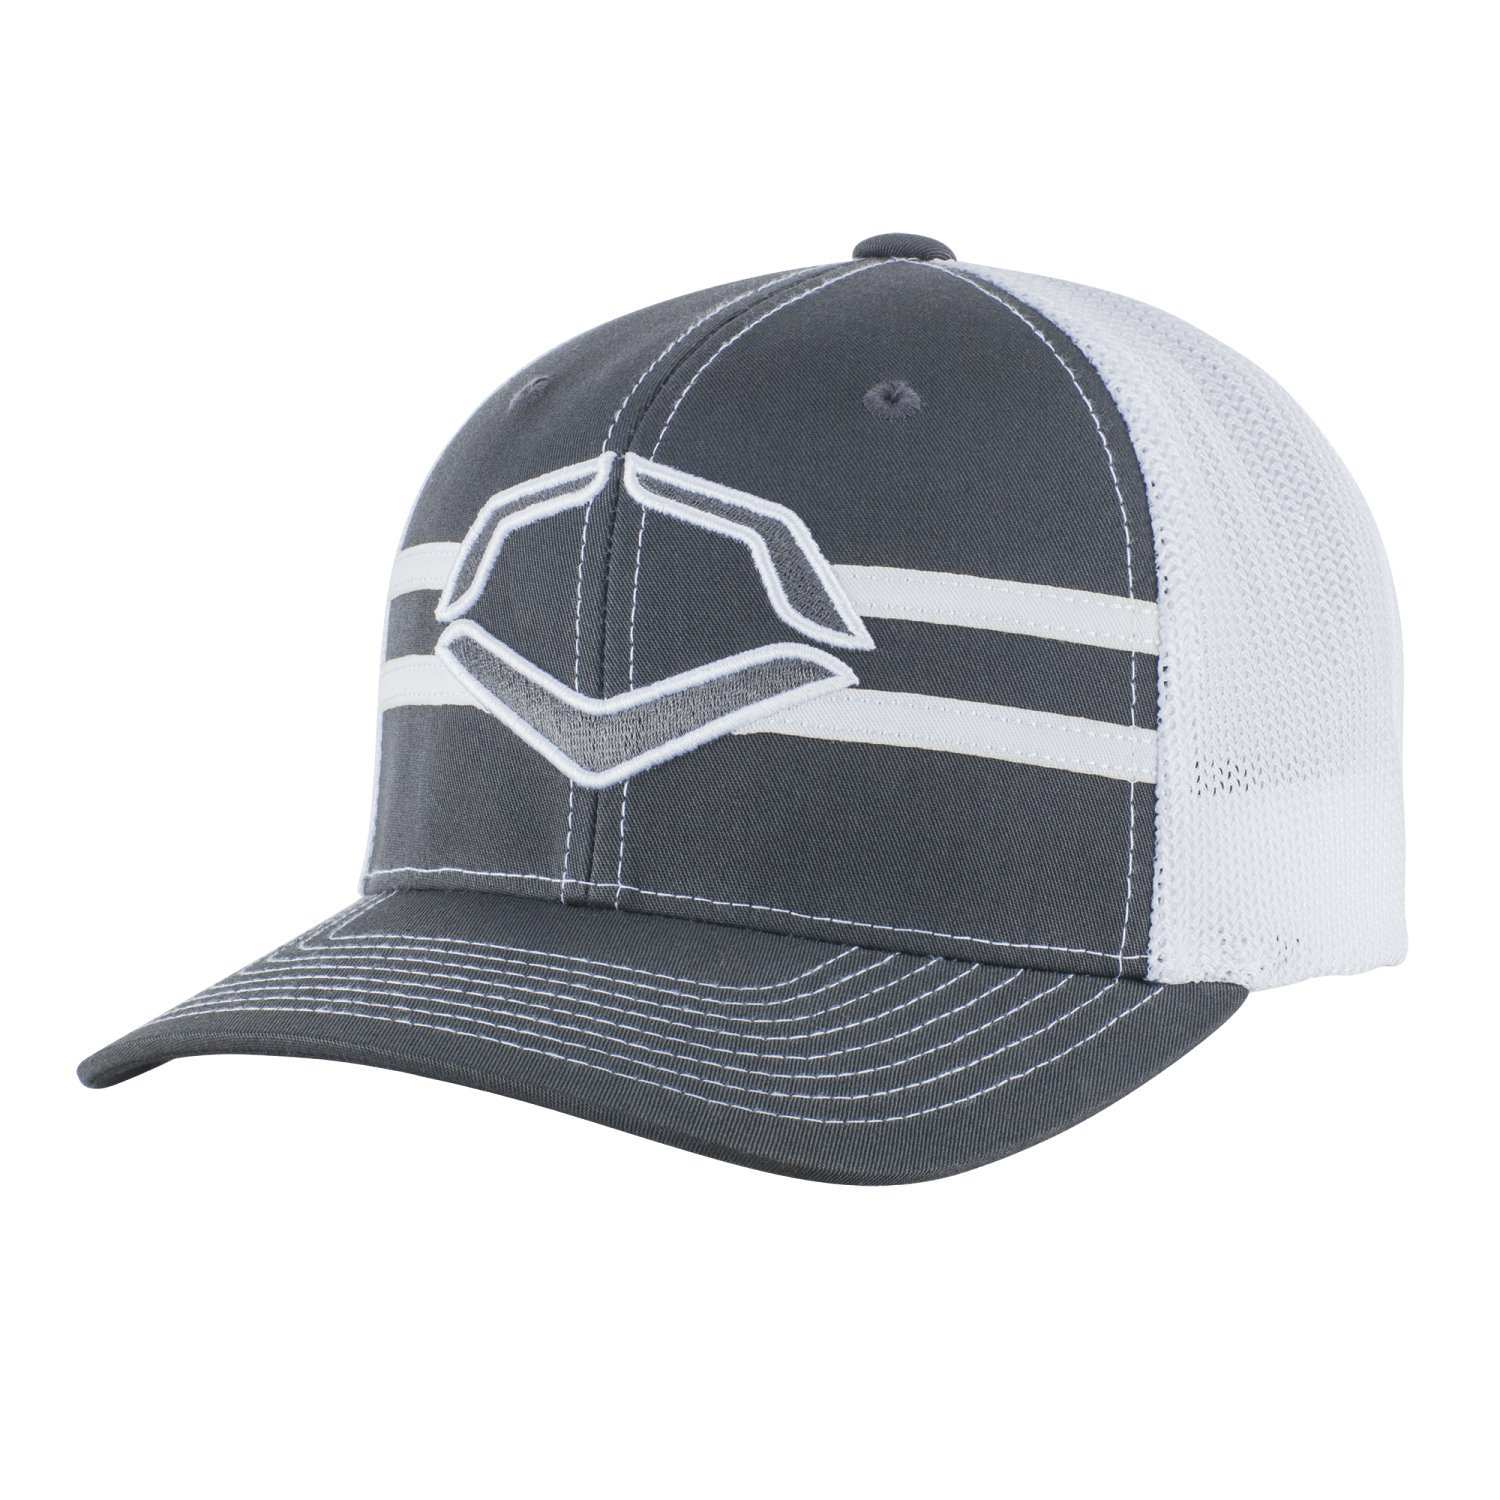 41285dd3efc68 Get Quotations · Wilson Sporting Goods Evoshield Grandstand Flexfit Hat,  Charcoal/White, Small/Medium (